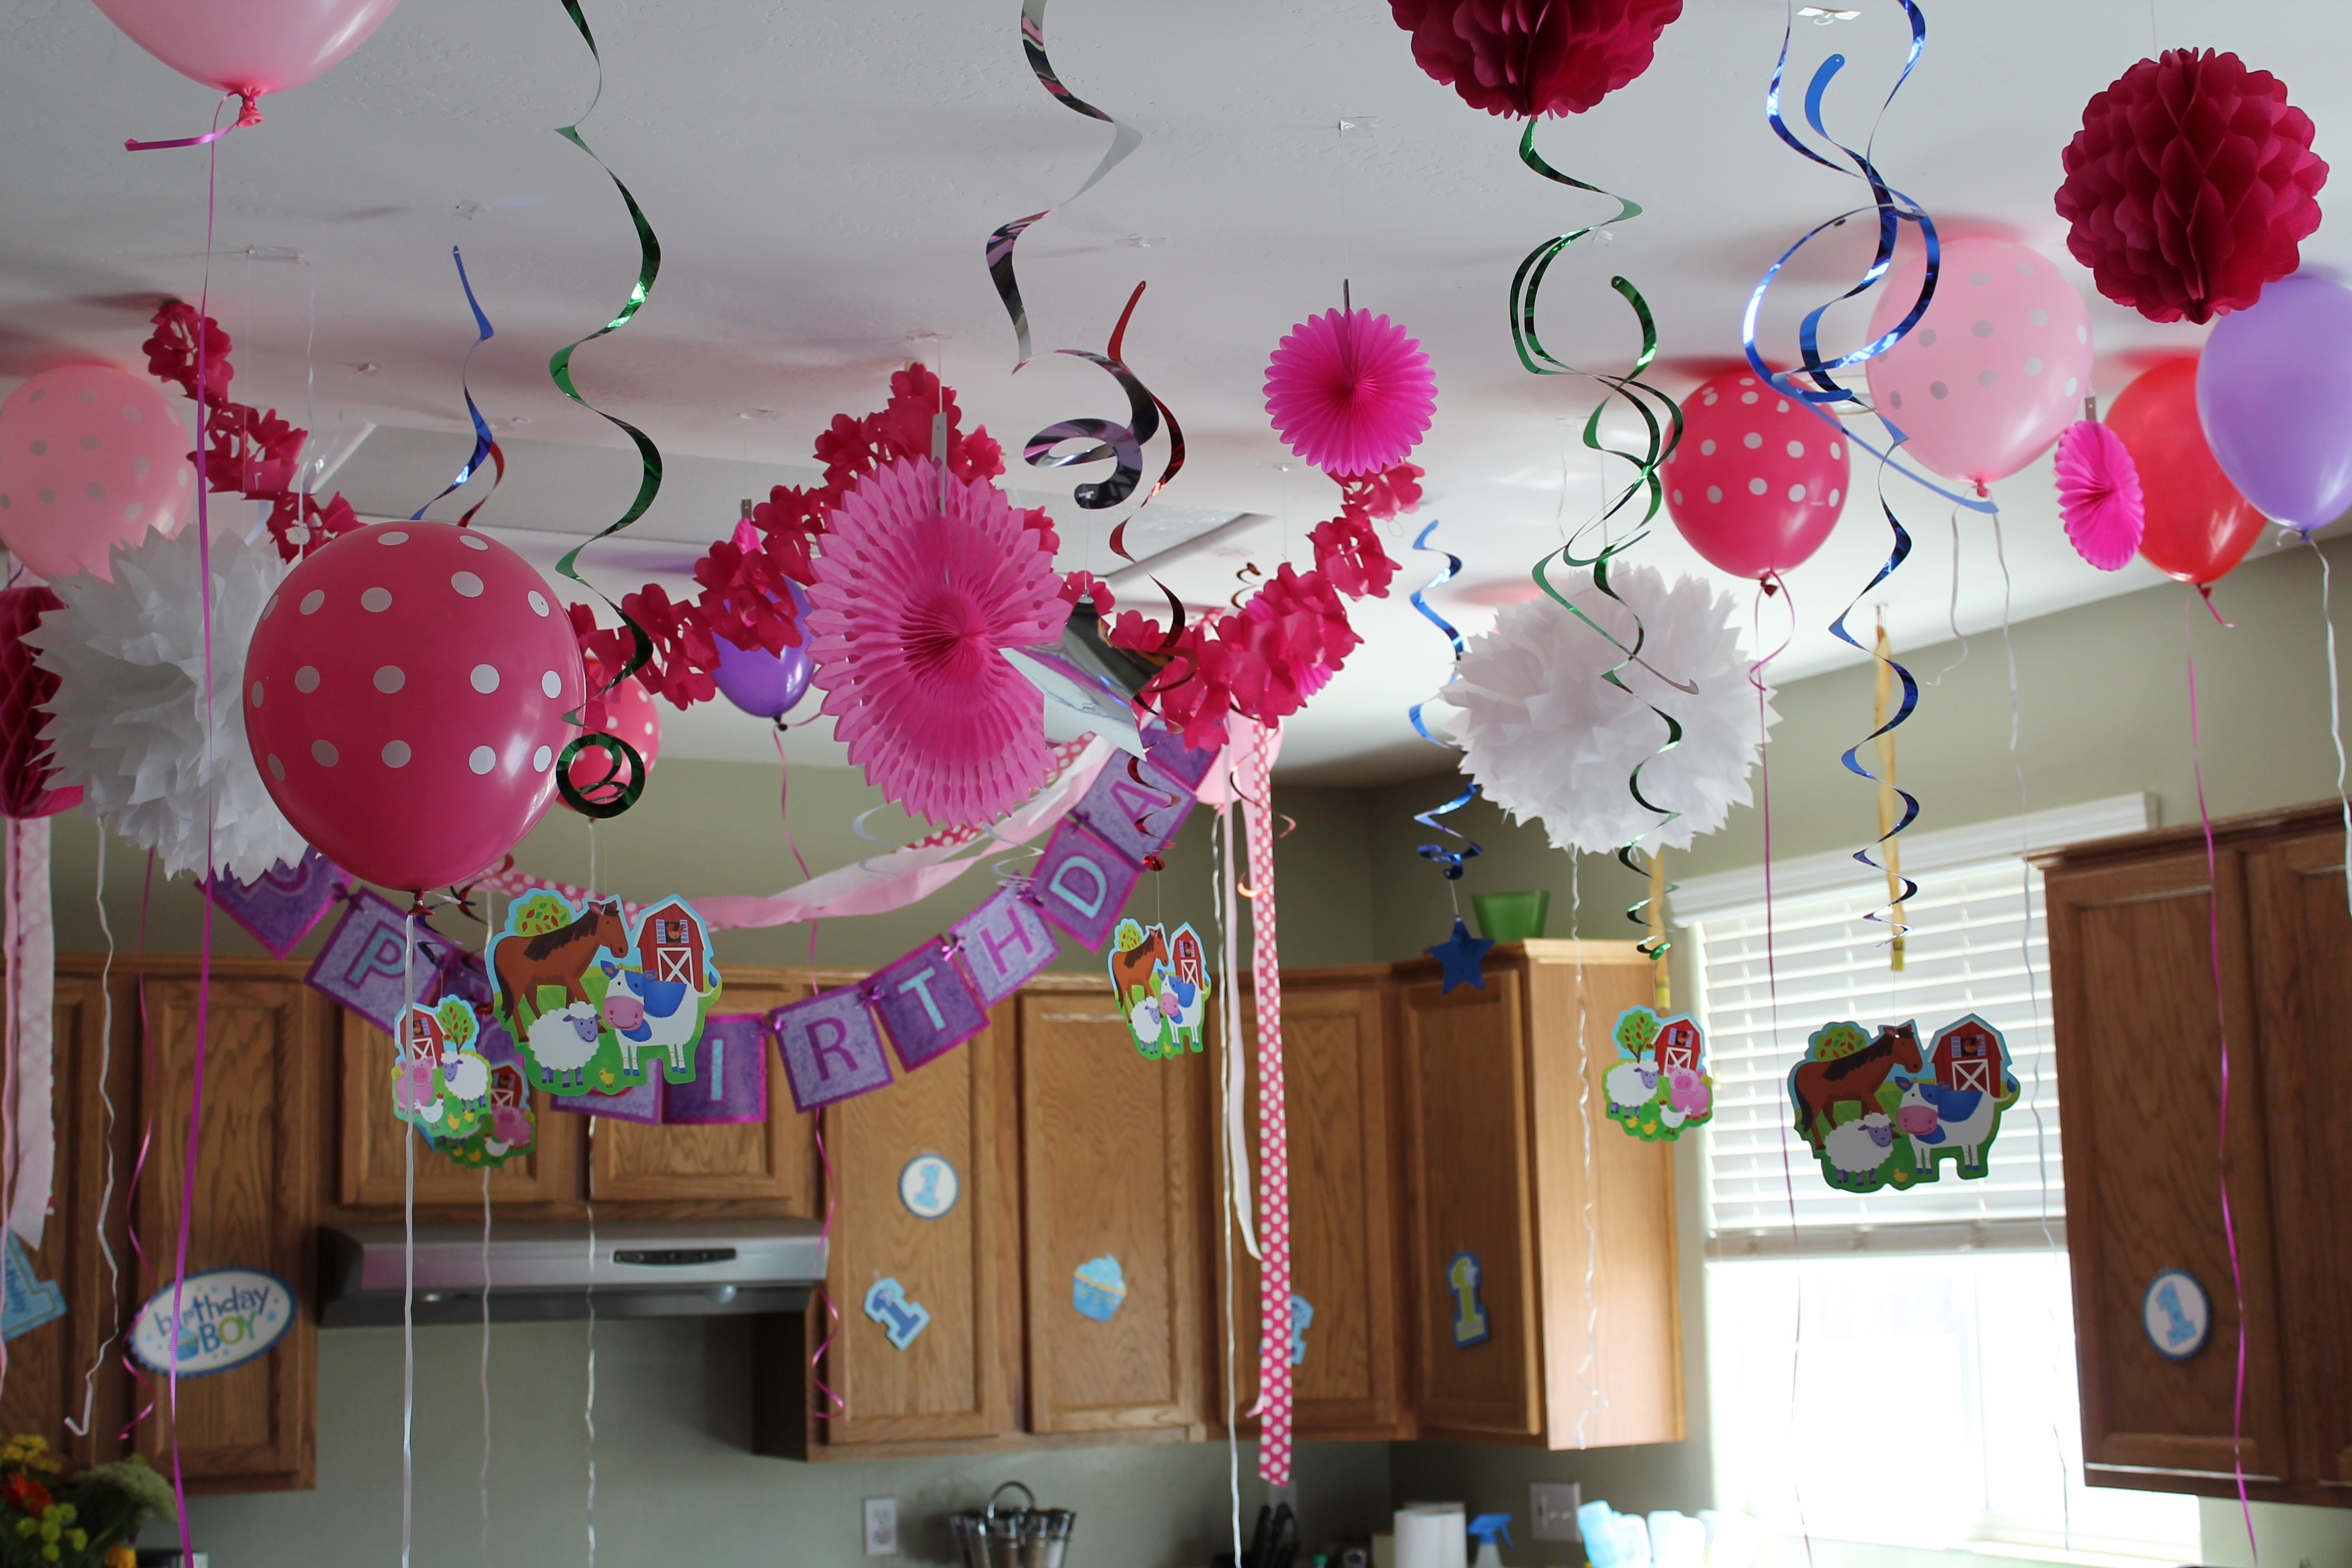 Decoration For Party The House Decorations For The Babies First Birthday Party